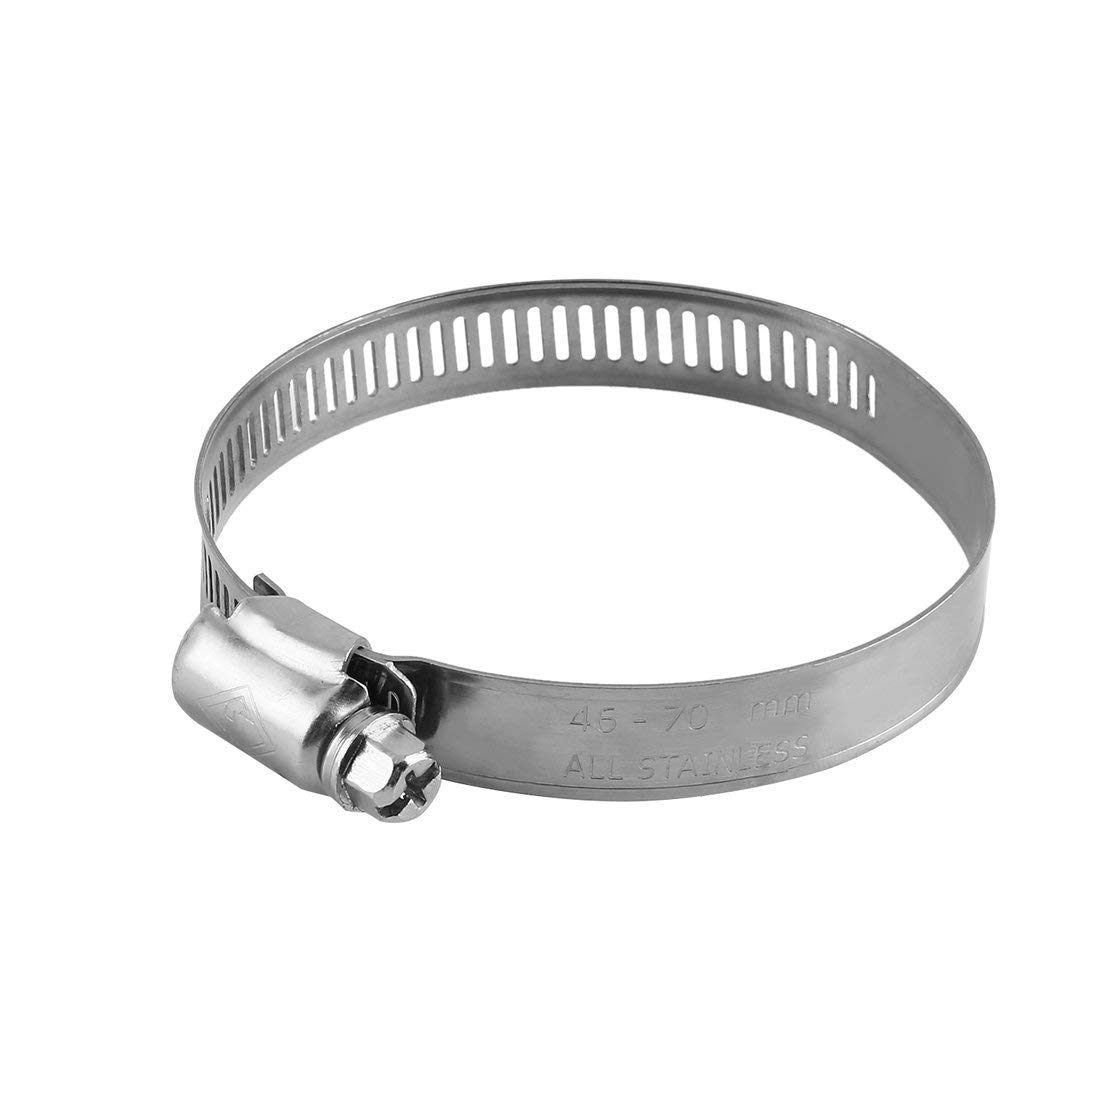 Candybarbar Universal Vintage Chrome Plated Motorcycle Modified Curved Exhaust Muffler Pipe Heat Shield Cover Guard Motorbike Parts